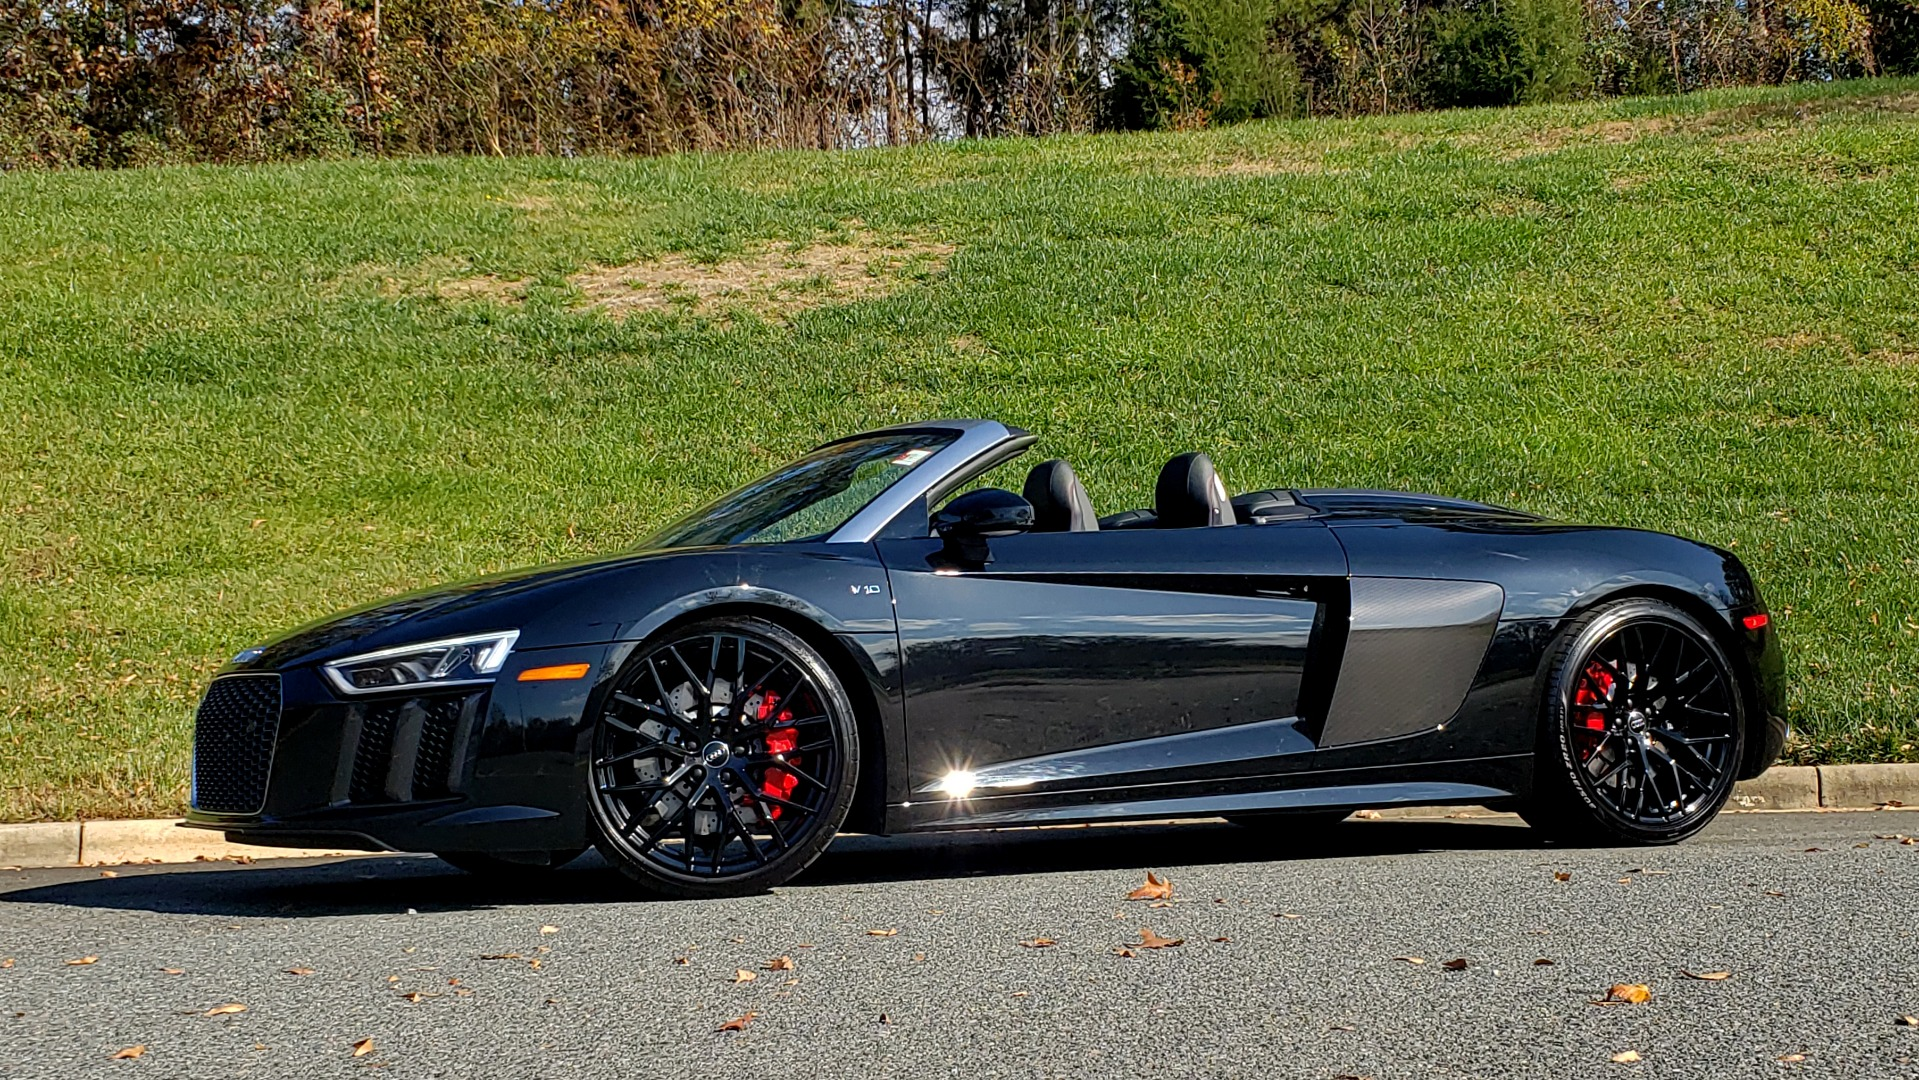 Used 2017 Audi R8 SPYDER V10 S-TRONIC / CARBON EXT & INT PKG / NAV / REARVIEW for sale Sold at Formula Imports in Charlotte NC 28227 2